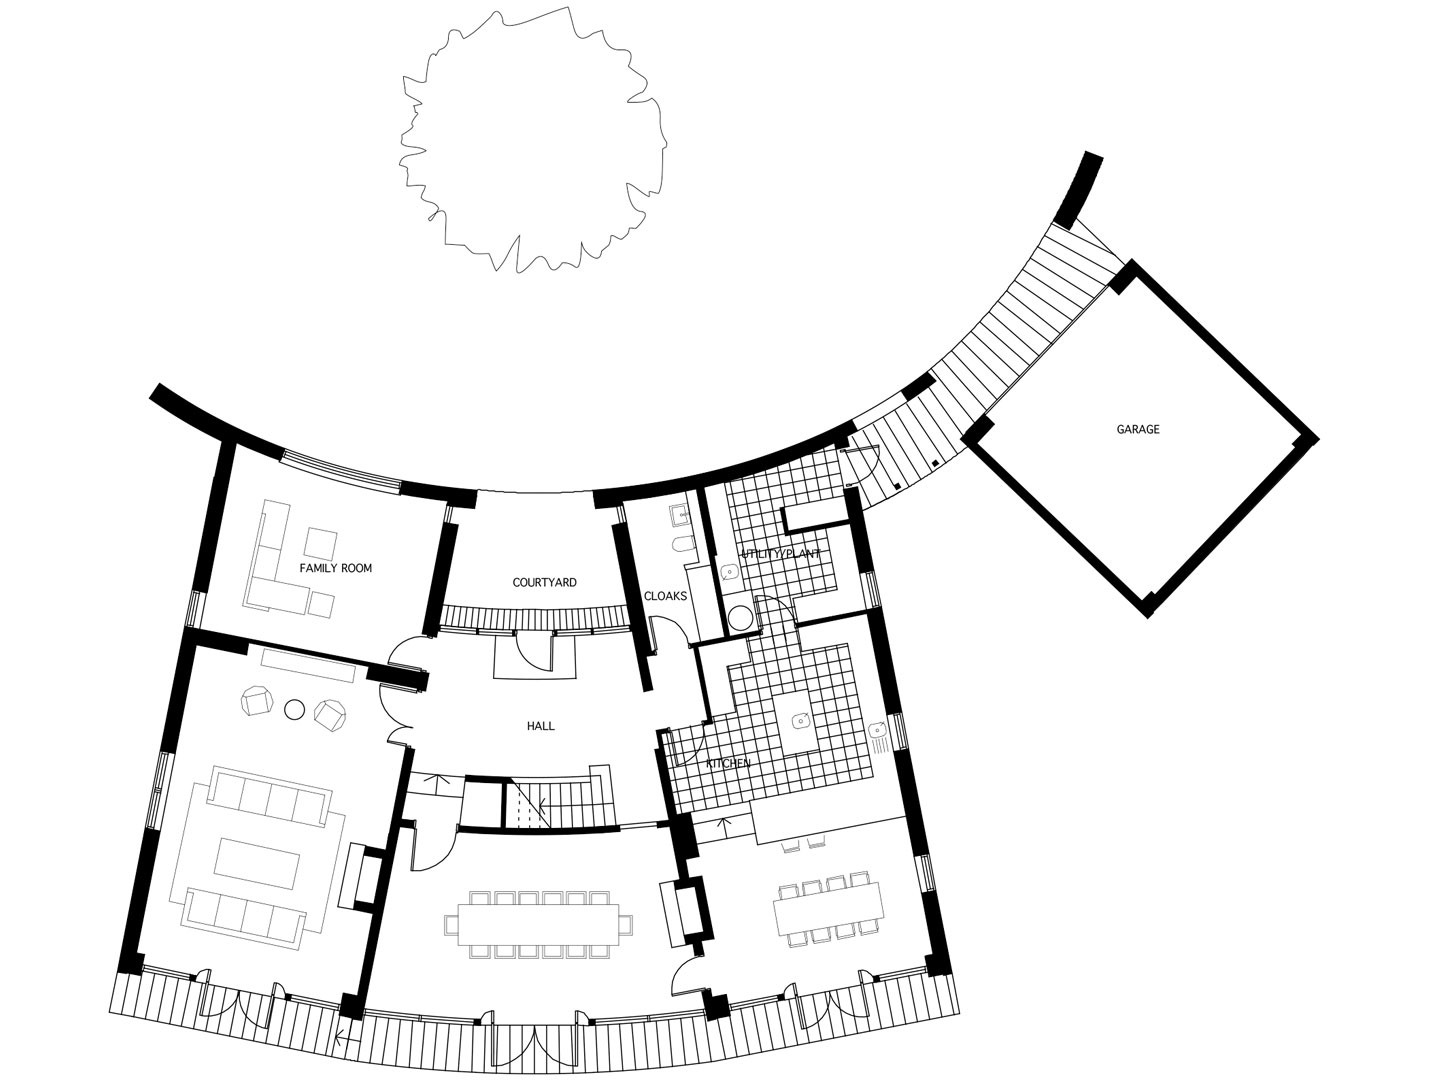 titness_park-cad_plan_00-groundfloor